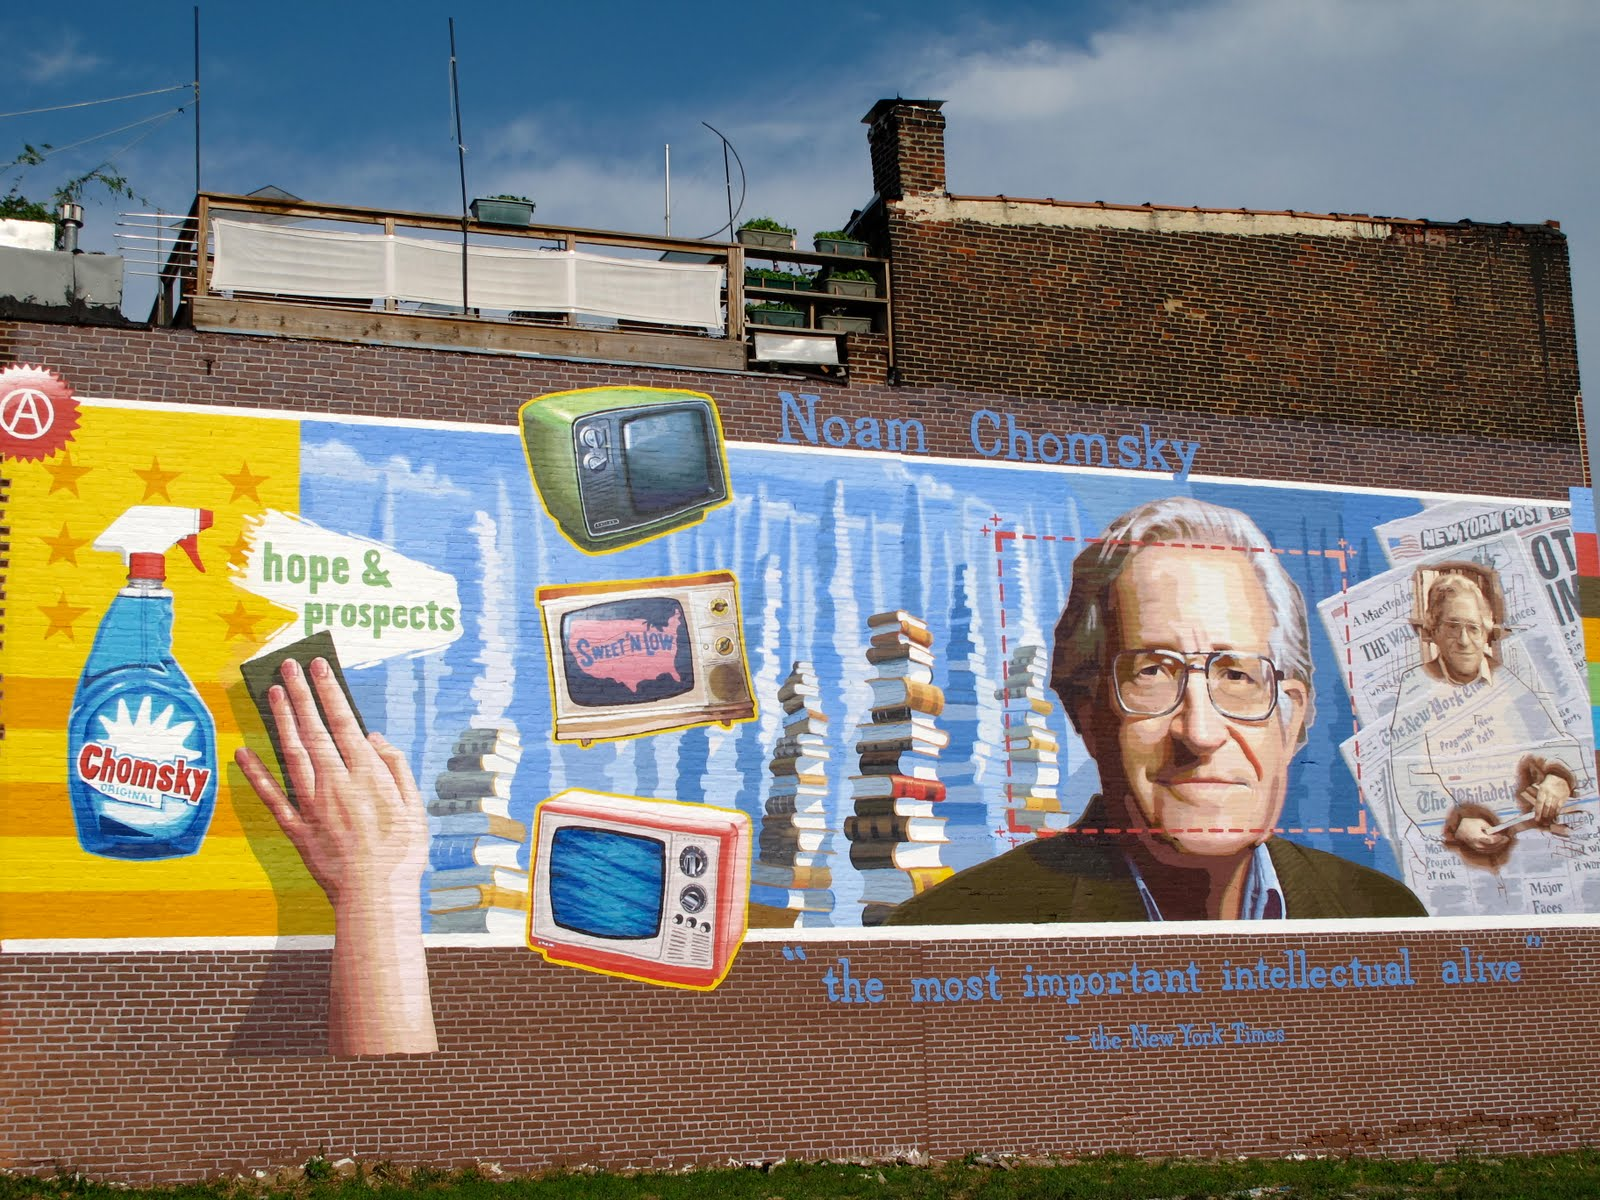 noam chomsky and the public intellectual in turbulent times noam1